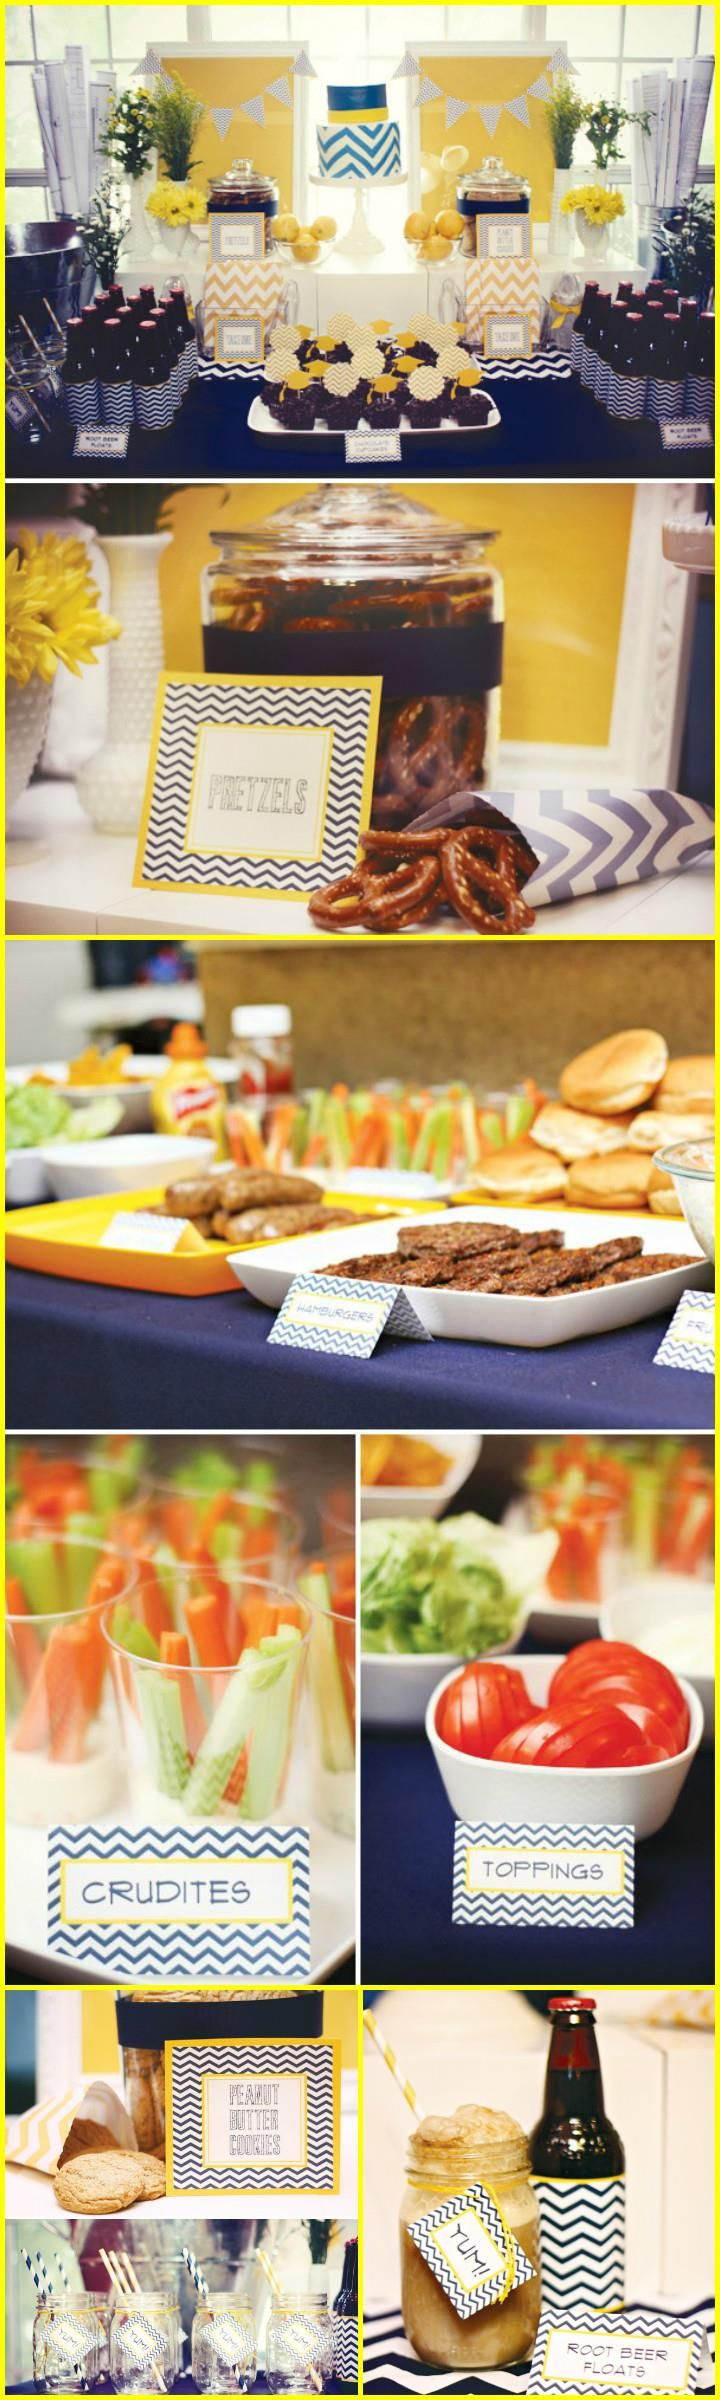 Chic Navy and Yellow Graduation Party Theme - 50+ DIY Graduation Party Ideas & Decorations